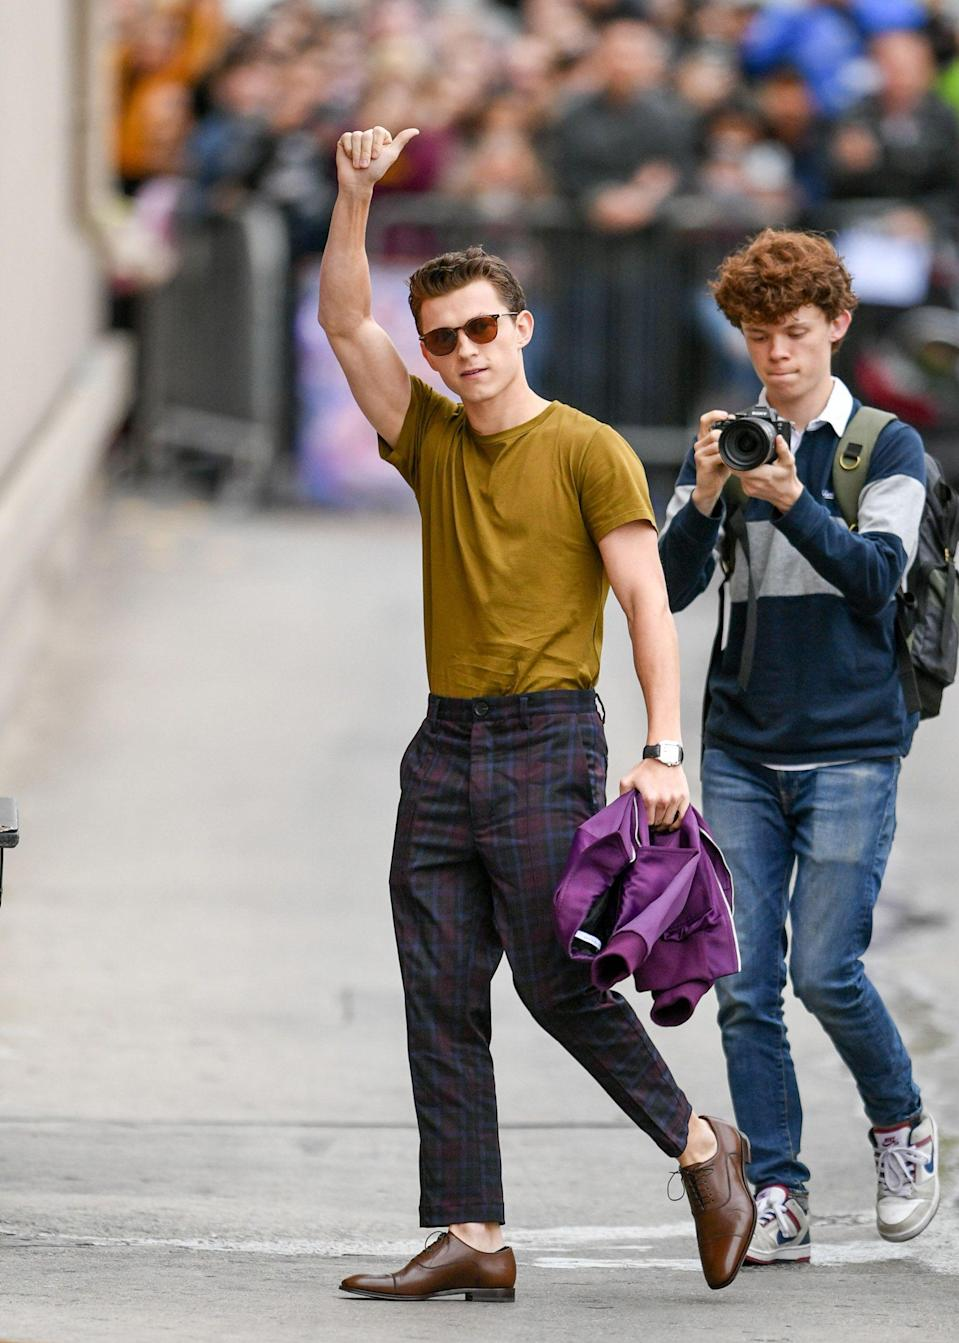 """<p>If Tom Holland had it his way, he'd be offline and living privately. """"But I think Marvel and Sony would shit their pants if I said goodbye to all of my followers,"""" the star told us in his <a href=""""https://www.esquire.com/entertainment/movies/a35401608/tom-holland-spider-man-3-cherry-cover-story/"""" rel=""""nofollow noopener"""" target=""""_blank"""" data-ylk=""""slk:Esquire cover interview"""" class=""""link rapid-noclick-resp""""><em>Esquire</em> cover interview</a> this winter. That's a healthy amount of pressure for certain, but in the (very remote) chance that those contracts ever dry up, it still feels like a good idea to round up some our favorite candid snaps of Tom Holland, well, being Tom Holland. And what better occasion than the star's 25th birthday? From fan festivals across the globe to family meet ups back in England, here are 35 photos of the UK actor through the years. </p>"""